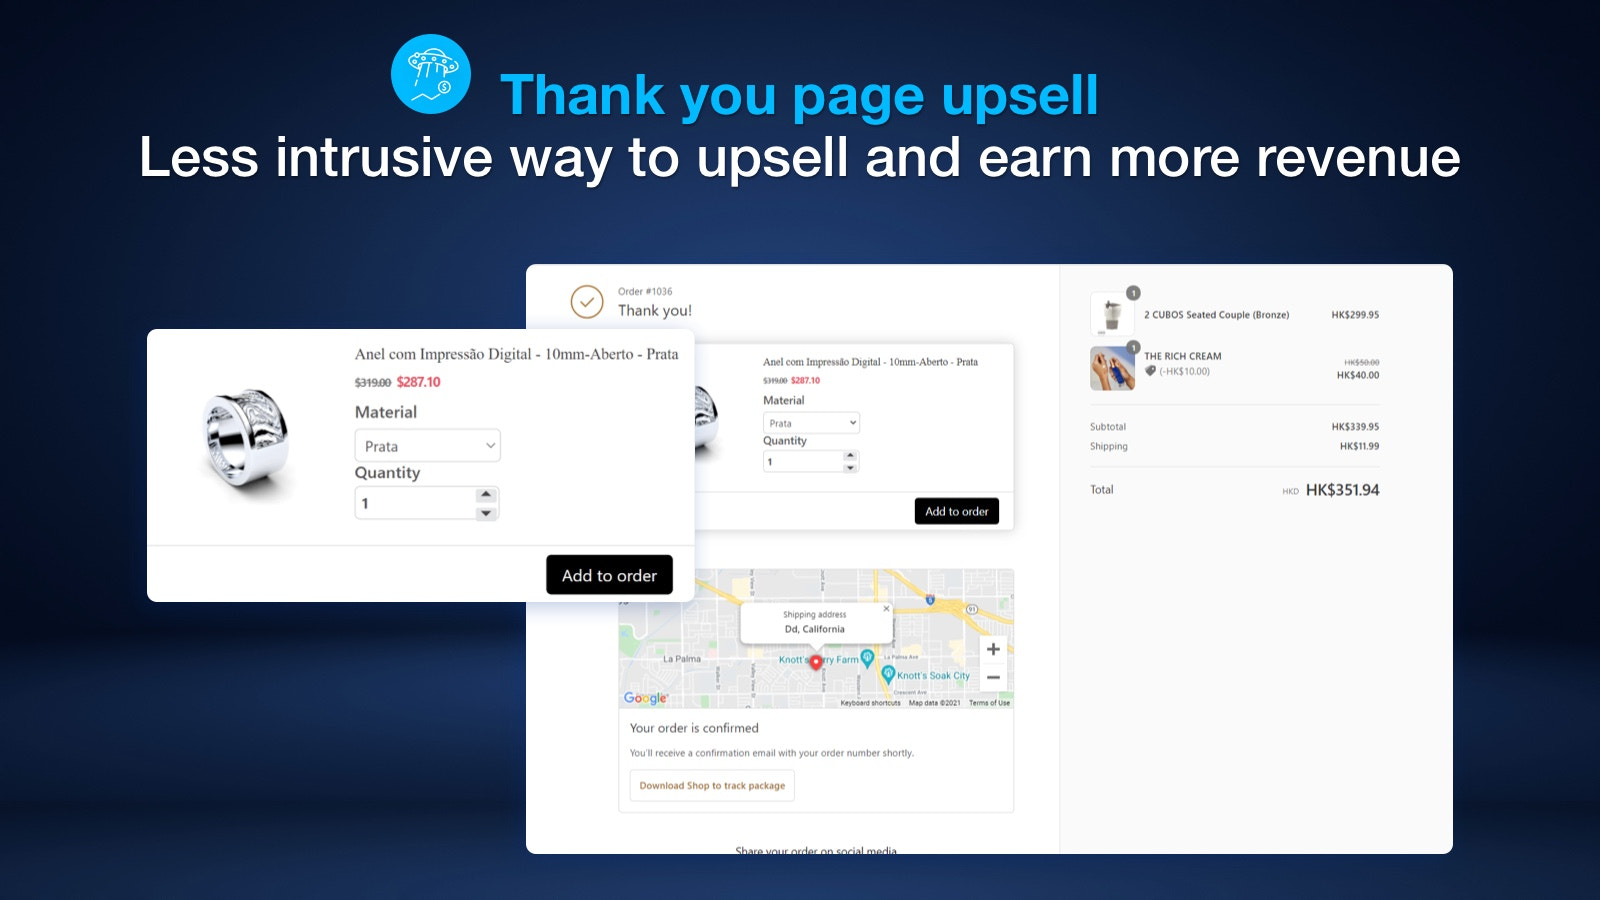 Thank you page upsell